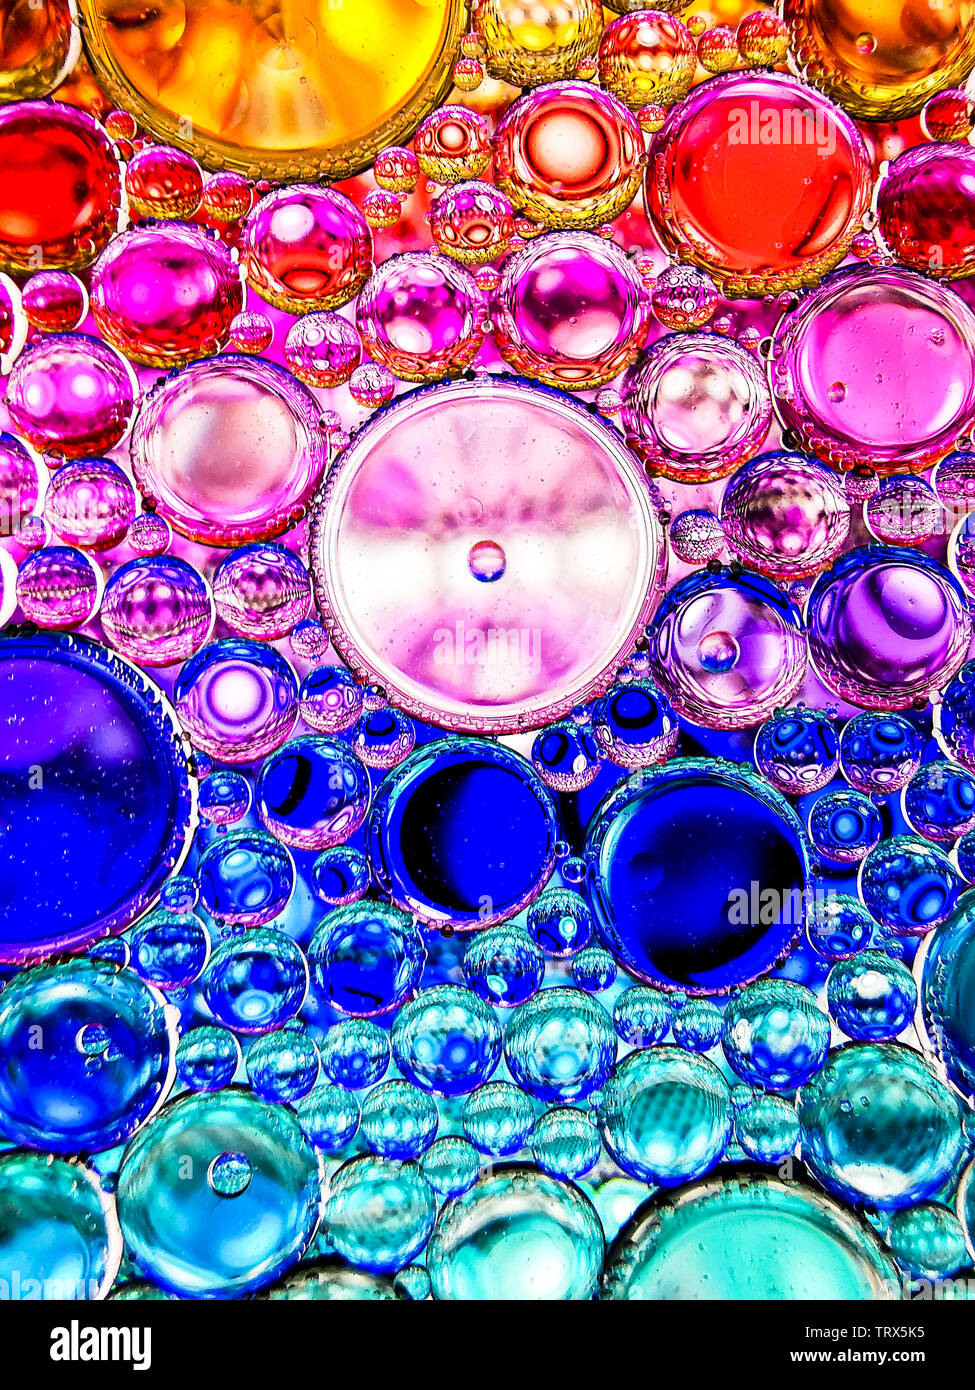 Neon Rainbow Colorful Oil Bubbles Abstract Textures For Backgrounds Stock Photo Alamy